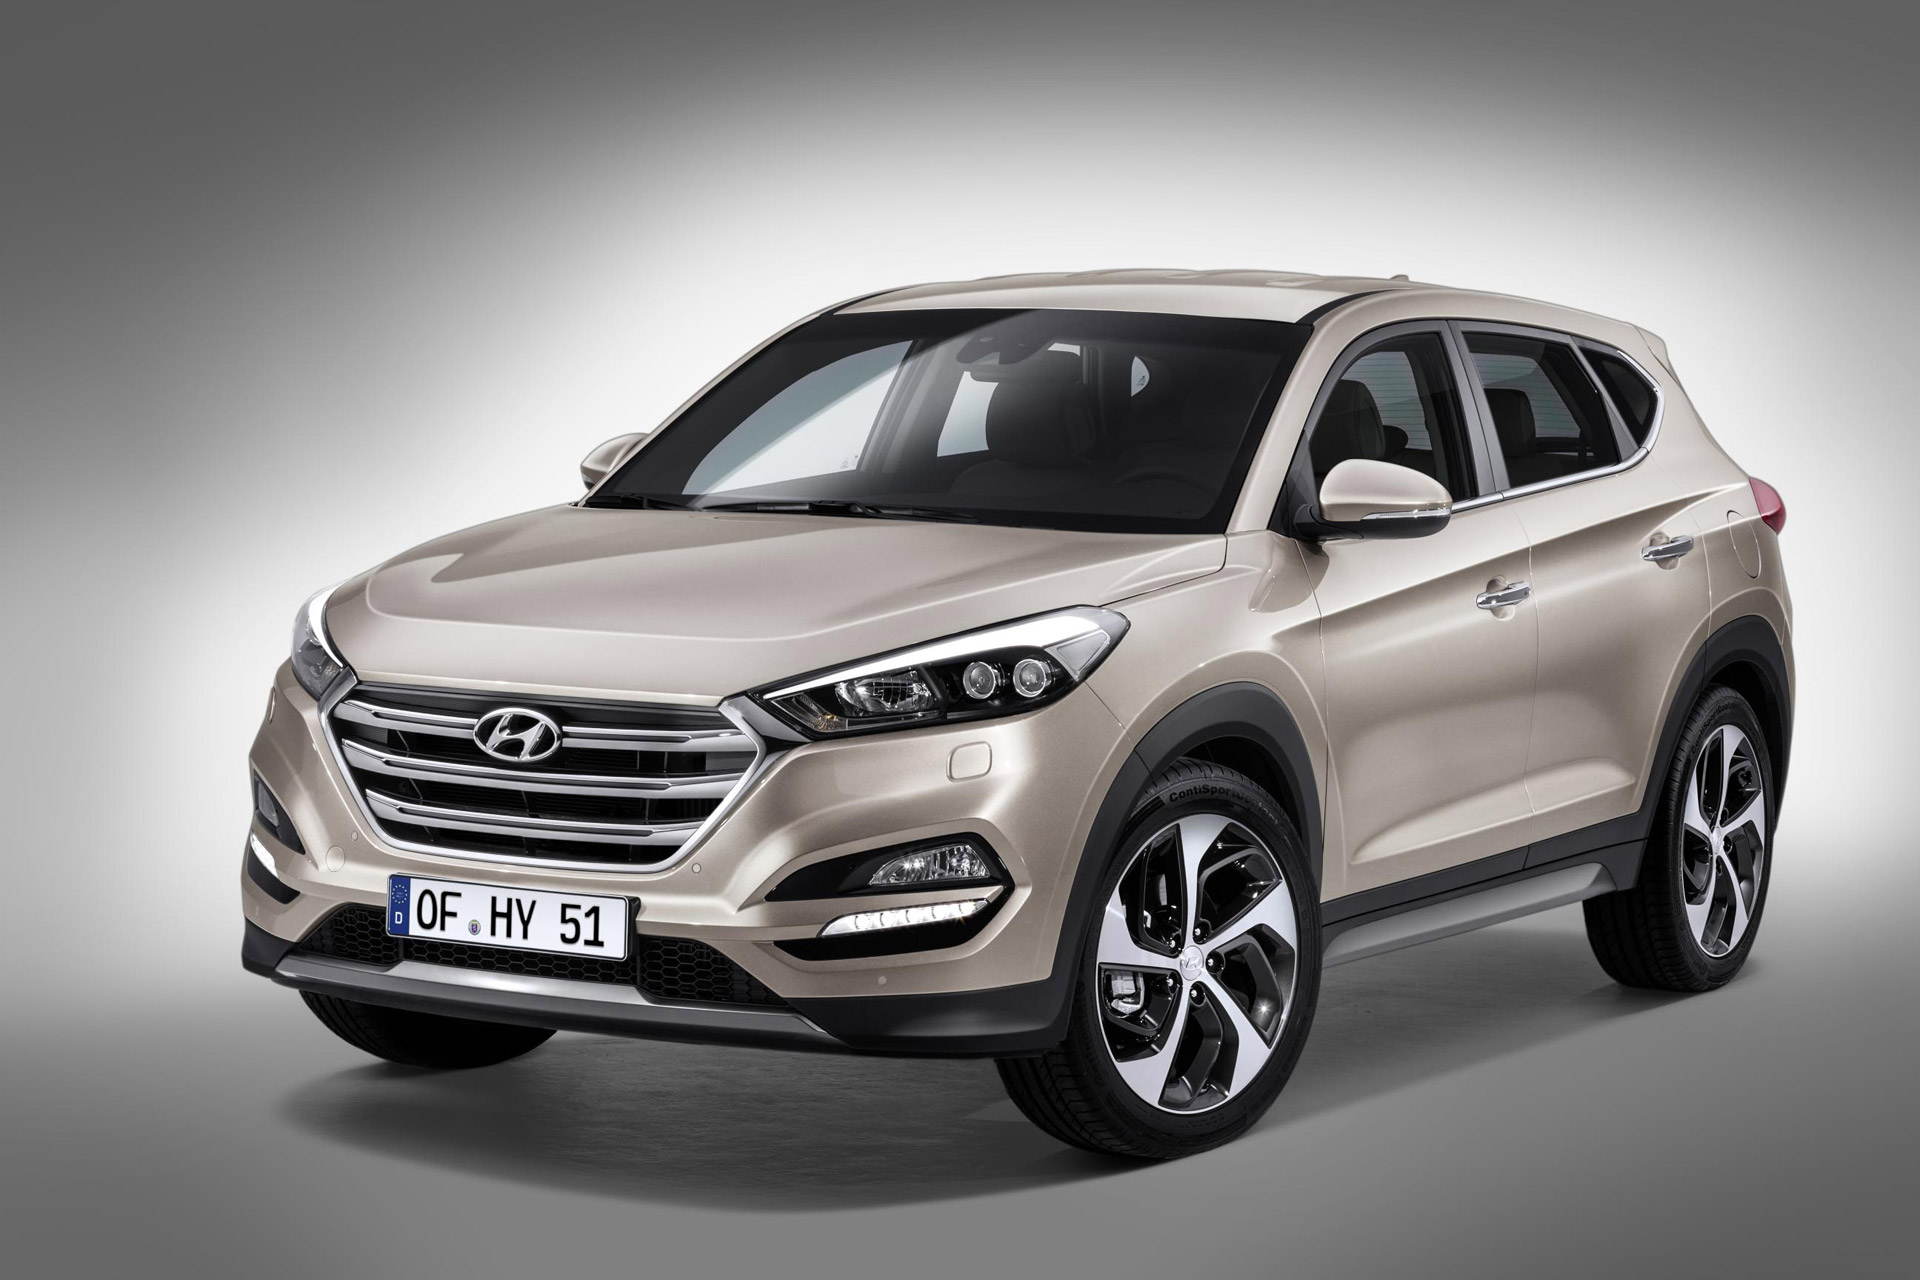 hyundai tucson_100501027_h 2016 hyundai tucson recalled for lighting glitch Hyundai Tucson Engine Problems at alyssarenee.co